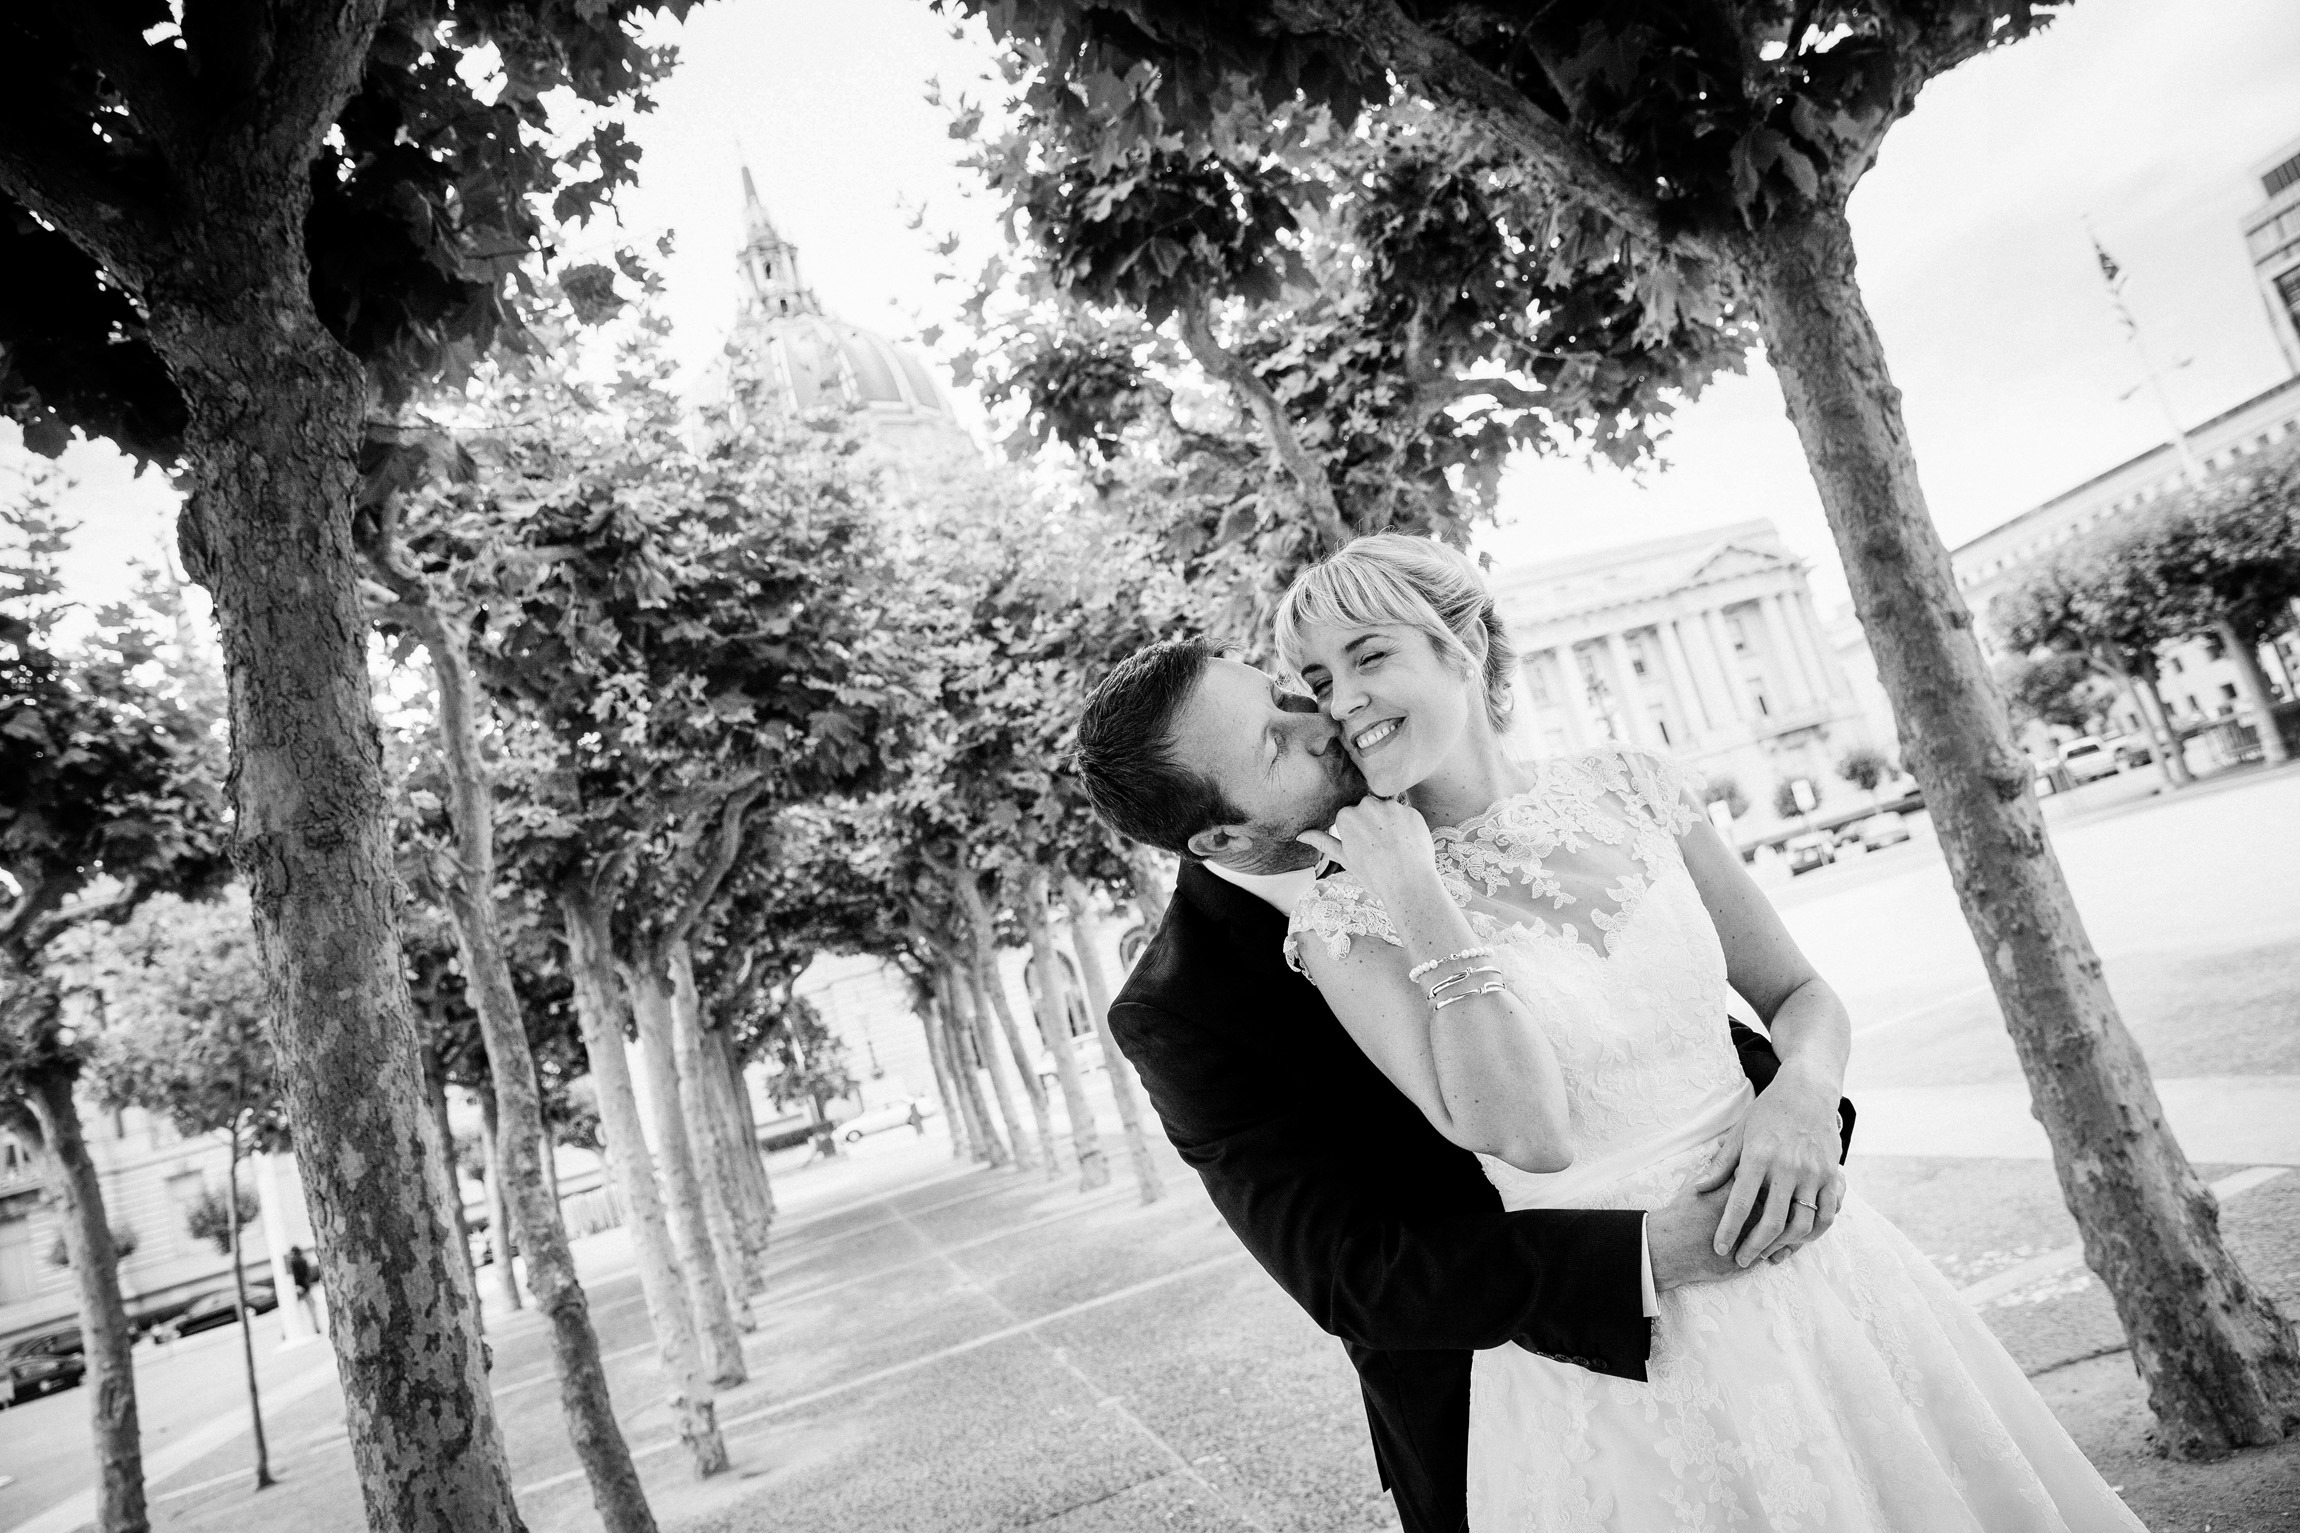 040_janaeshieldsphotography_sanfrancisco_cityhall_weddings.jpg